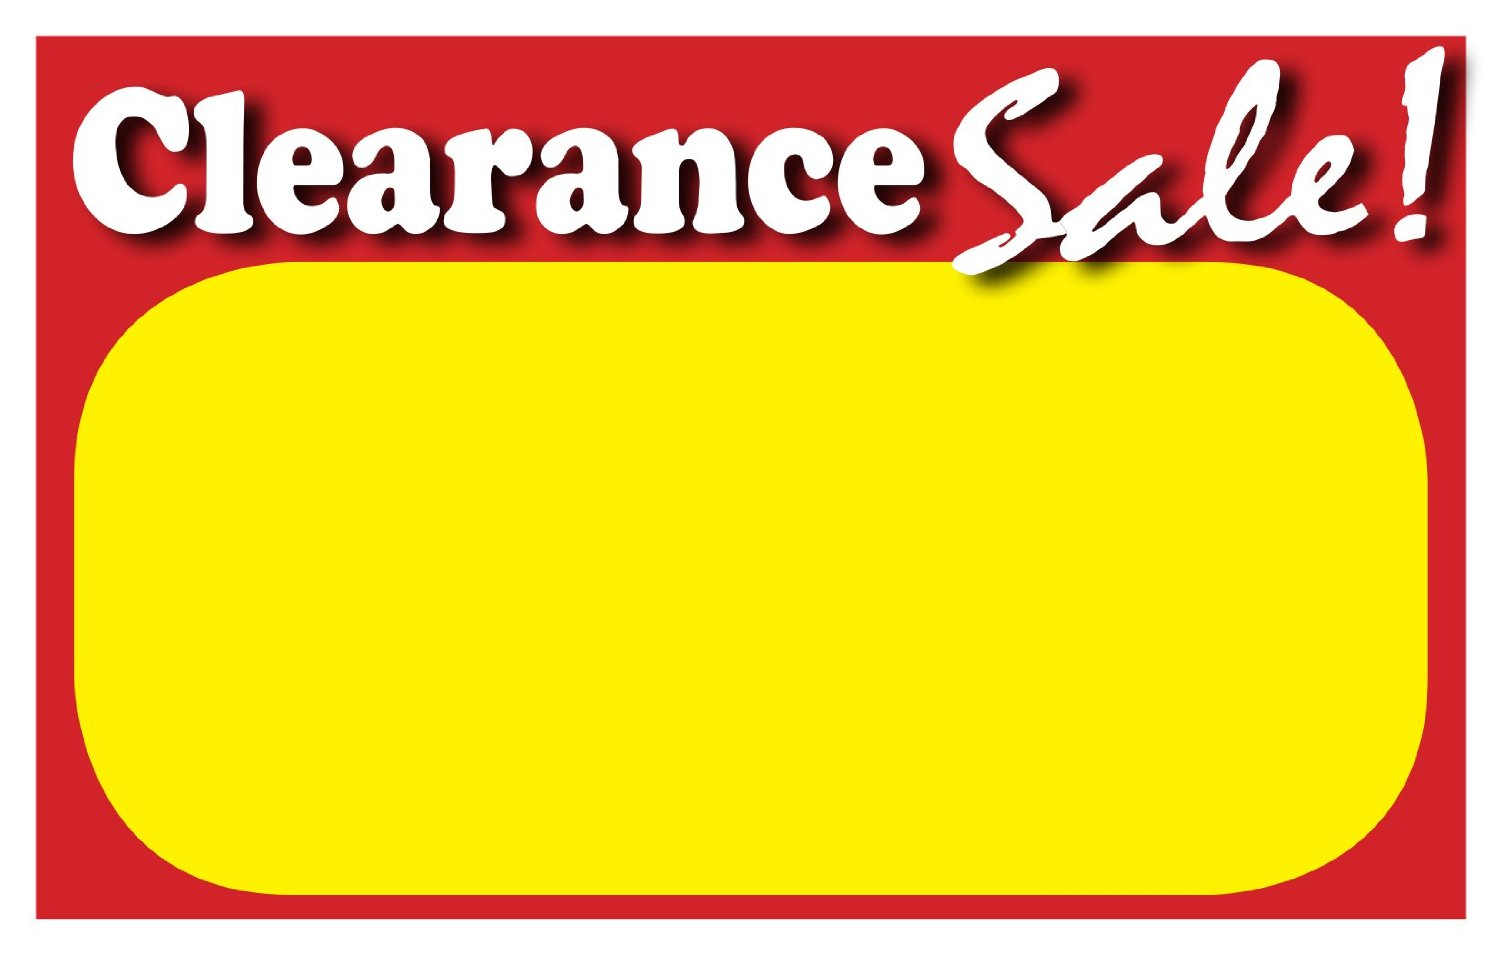 photograph regarding Free Printable Sale Signs for Retail named Economical Free of charge Printable Sale Signs or symptoms For Retail, locate Cost-free